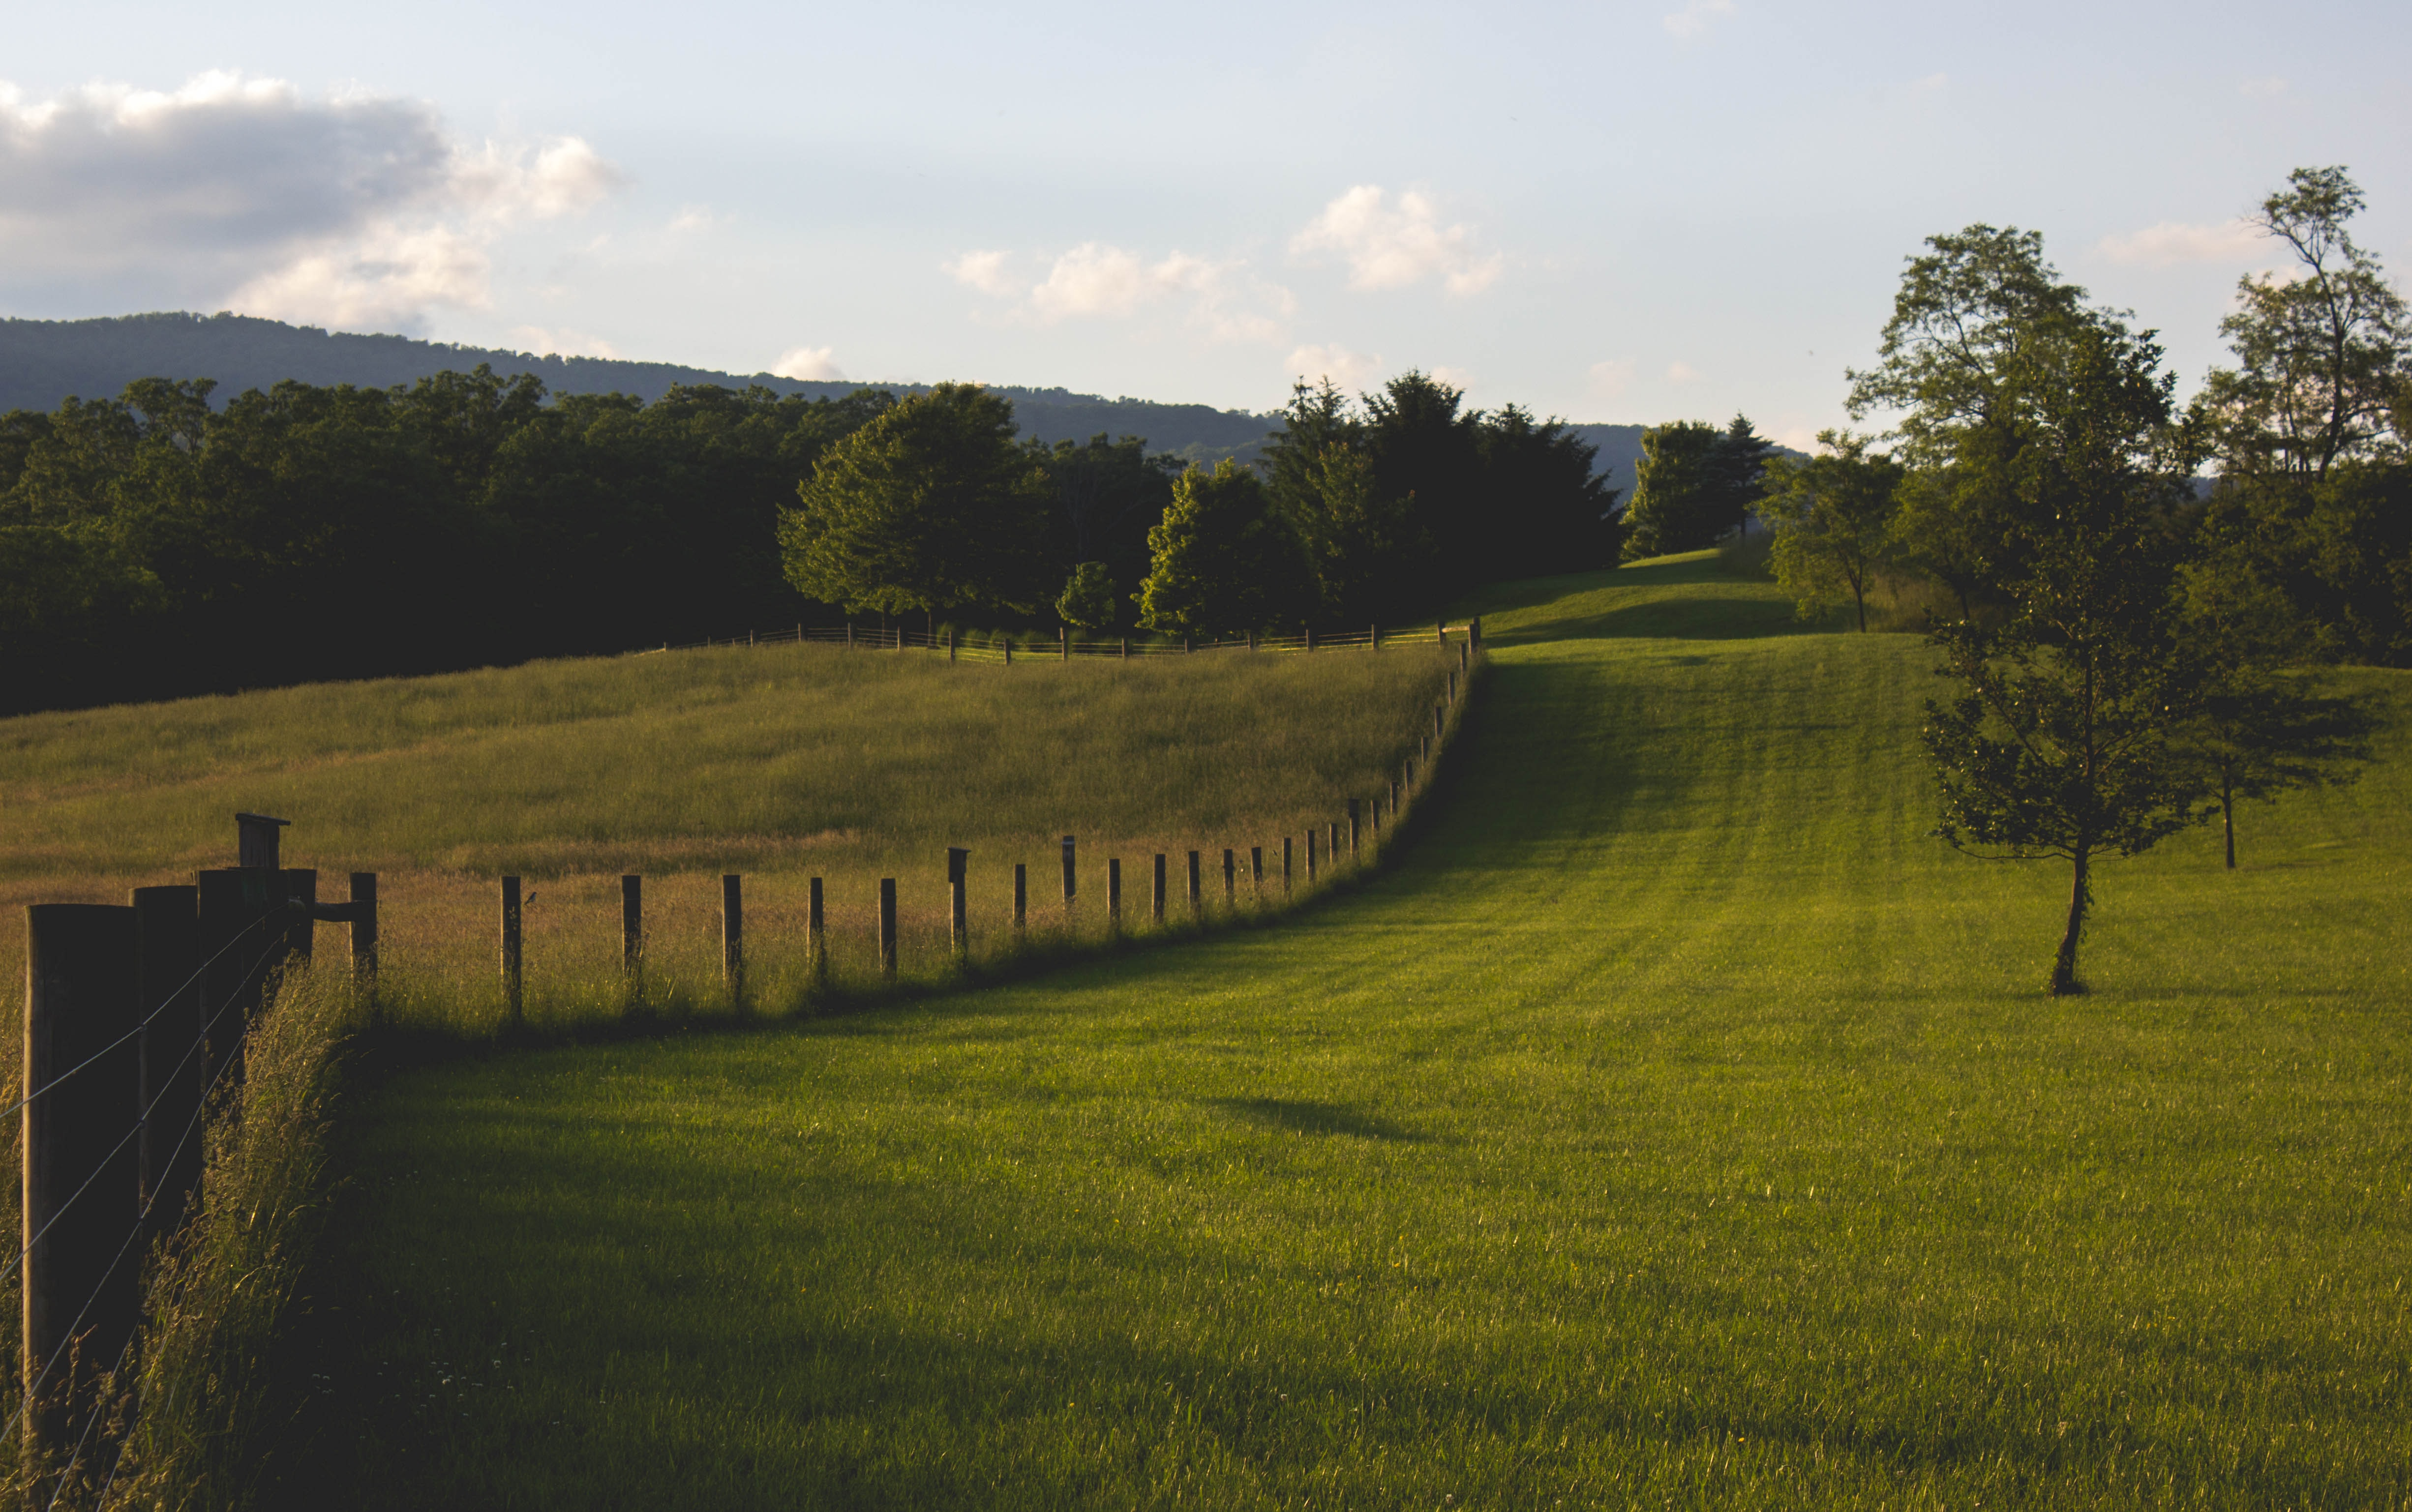 landscape photography of green field with fence